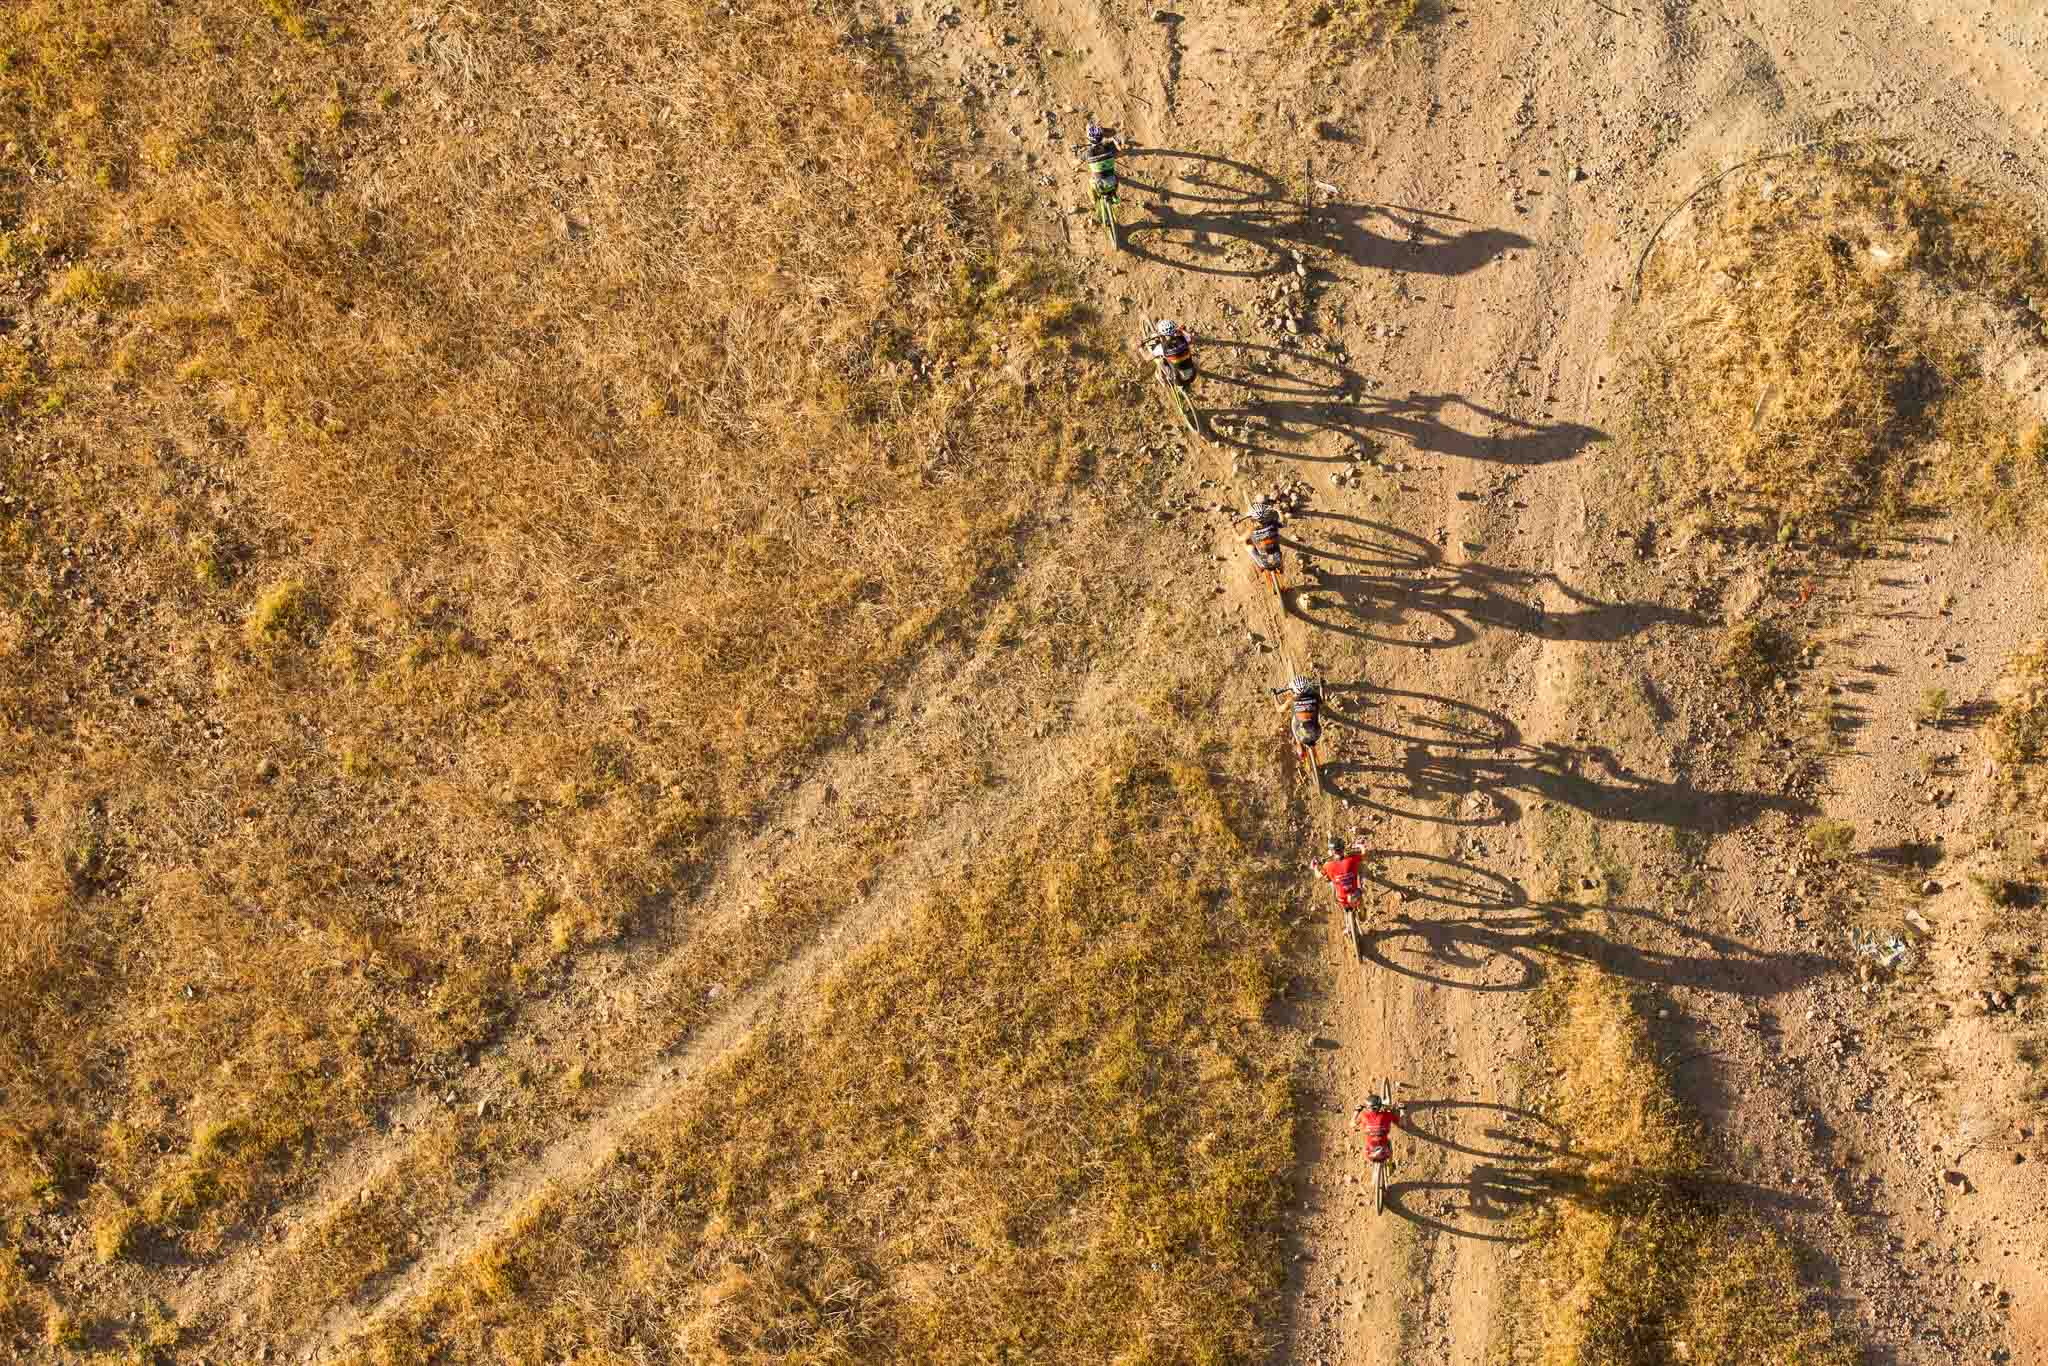 Riders during stage 1 of the 2016 Absa Cape Epic Mountain Bike stage race held from Saronsberg Wine Estate in Tulbagh, South Africa on the 14th March 2016 PLEASE ENSURE THE APPROPRIATE CREDIT IS GIVEN TO THE PHOTOGRAPHER AND SPORTZPICS ALONG WITH THE ABSA CAPE EPIC {ace2016}